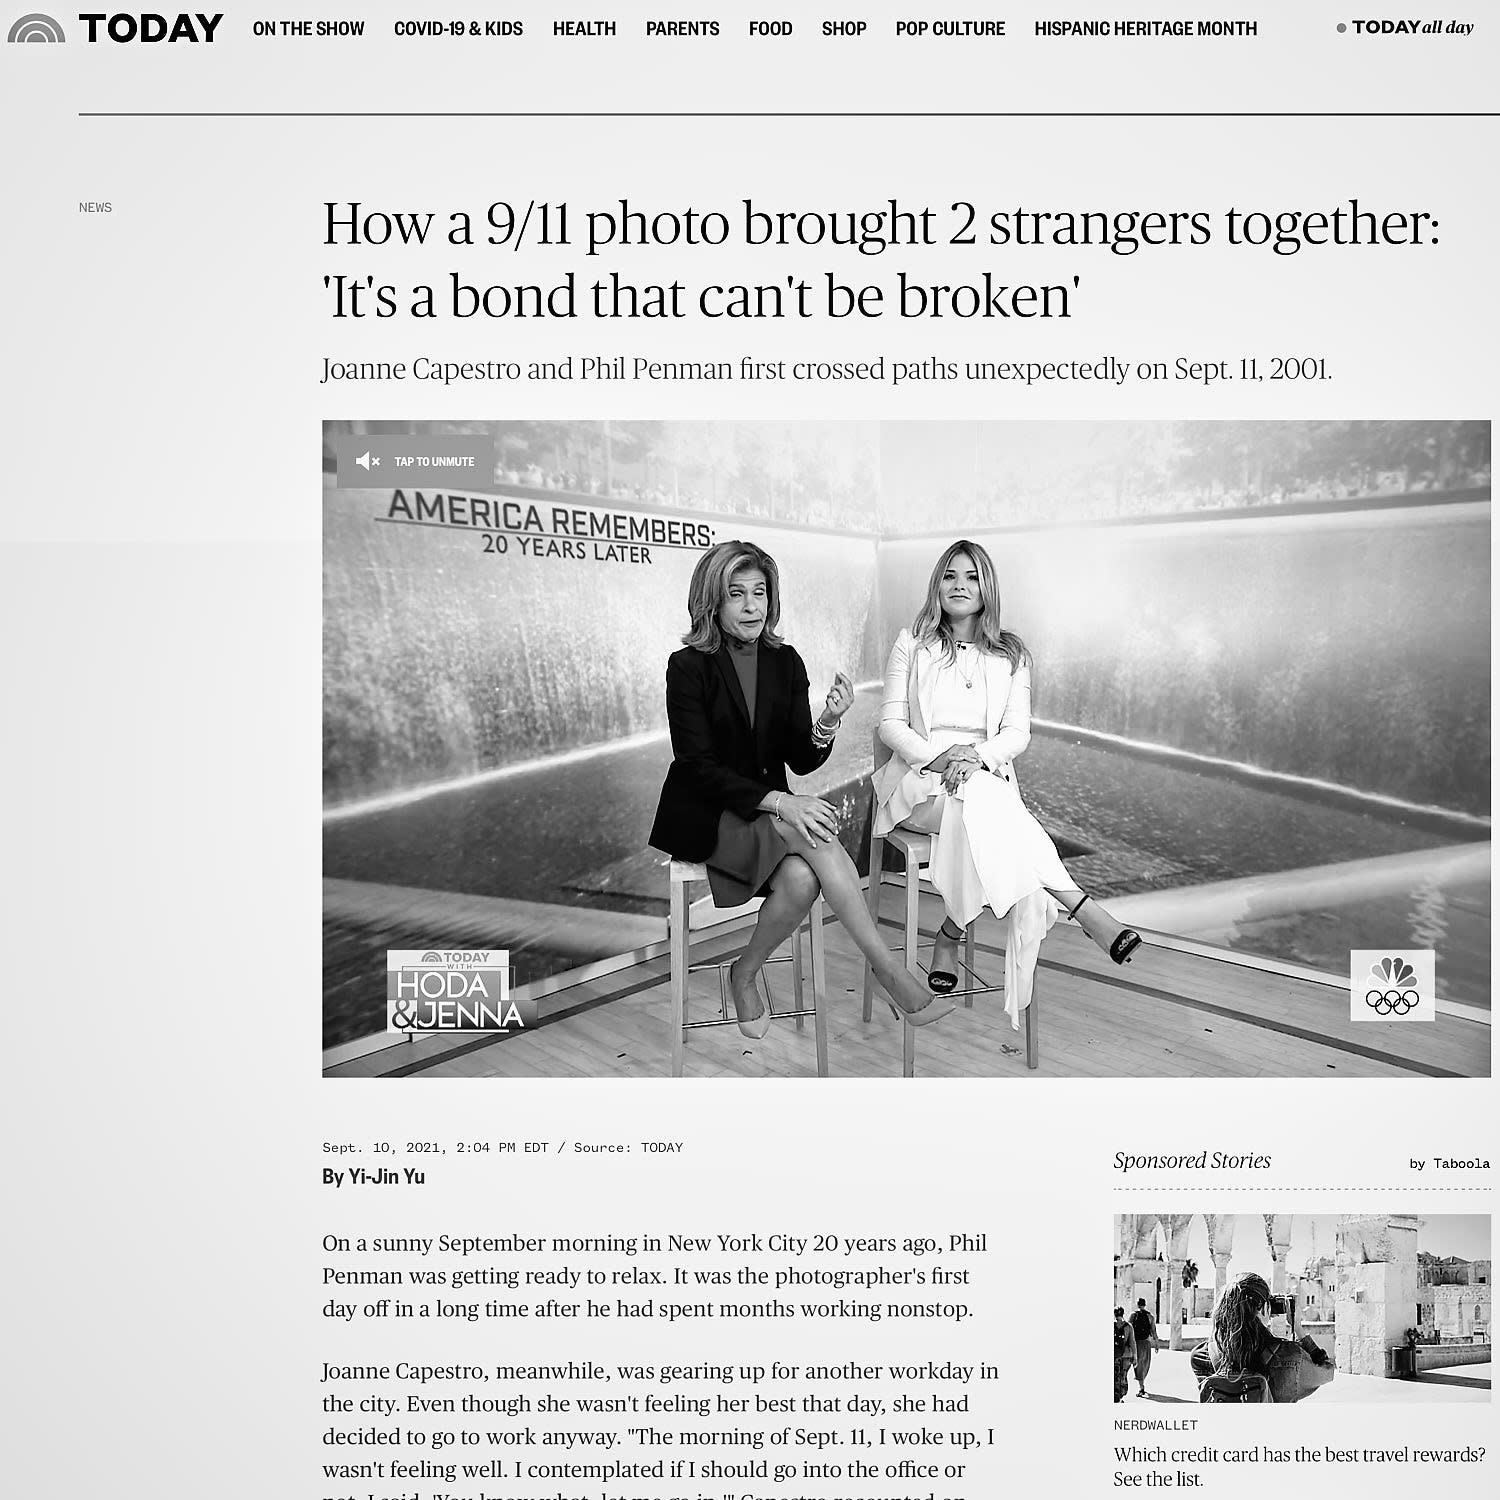 NBC TODAY SHOW : How a 9/11 photo brought 2 strangers together: 'It's a bond that can't be broken'